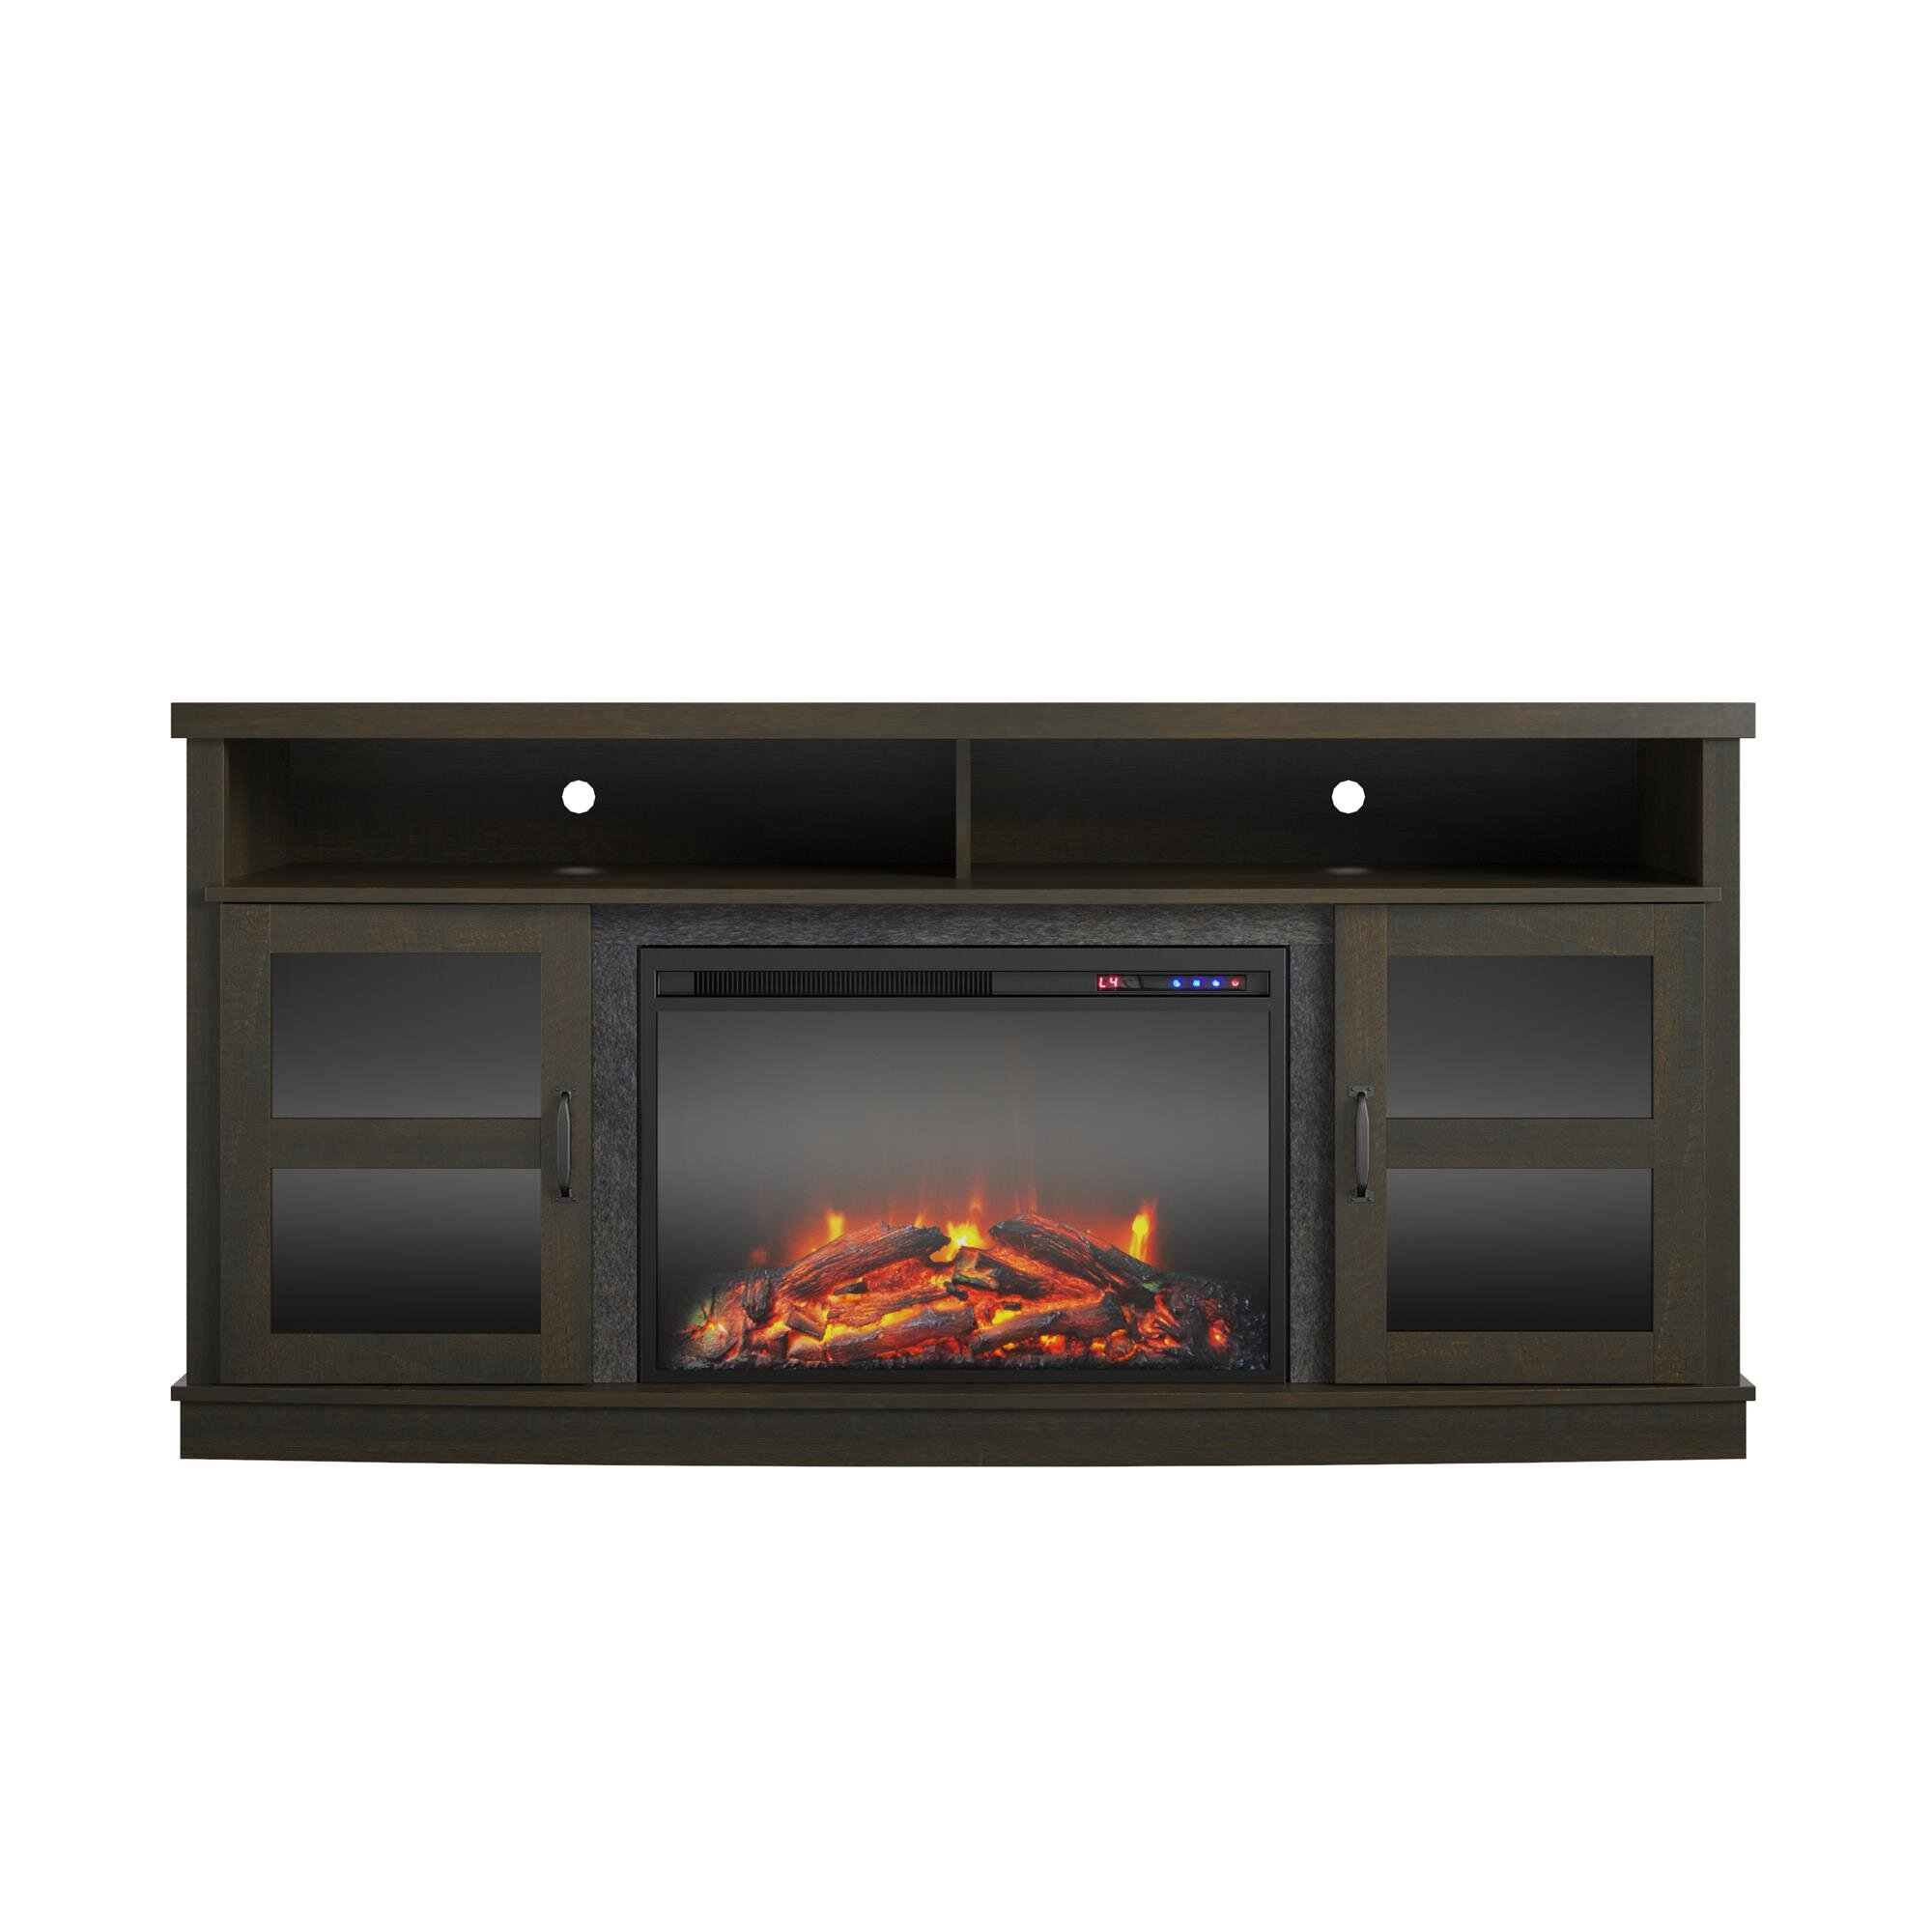 Latitude Run Billie Ann Tv Stand For Tvs Up To 65 With Electric Fireplace Included Reviews Wayfair